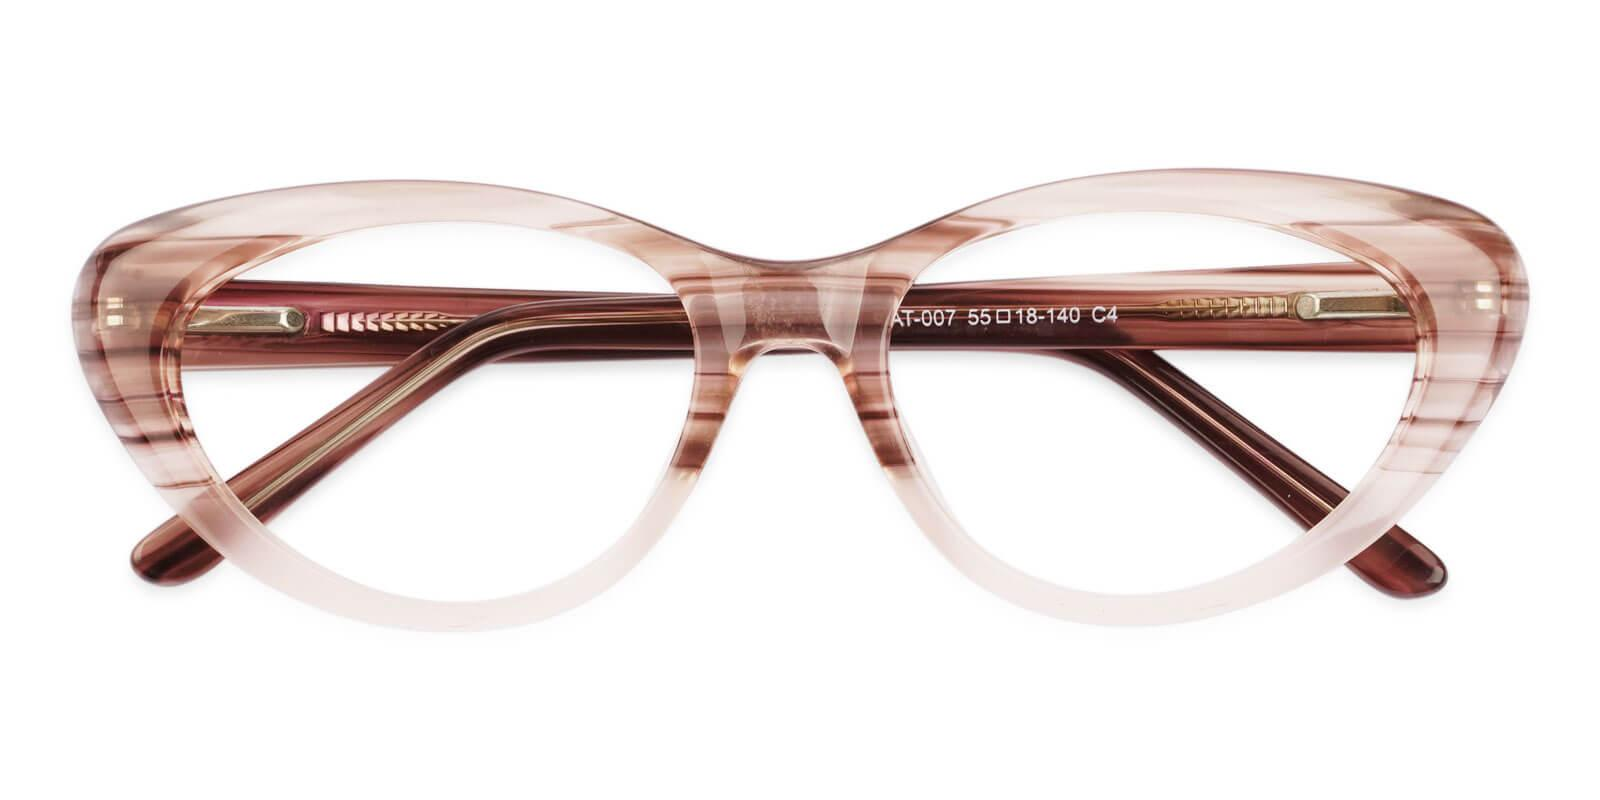 Irene Cream Acetate Eyeglasses , SpringHinges , UniversalBridgeFit Frames from ABBE Glasses